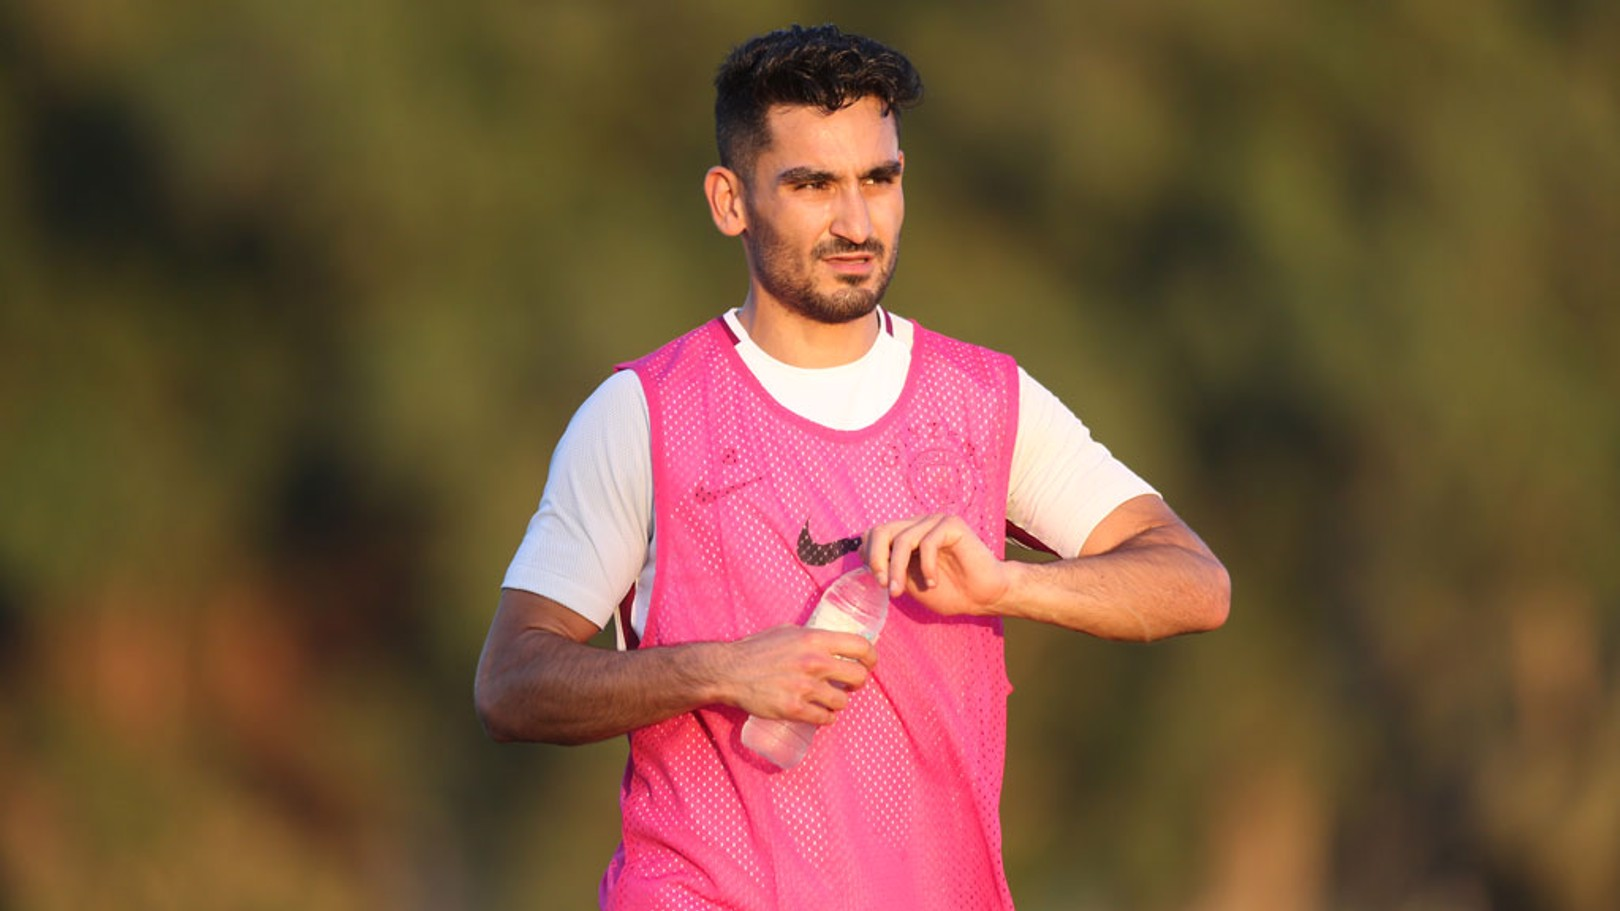 SILKY ILKAY: Gundogan is pleased with his form and fitness